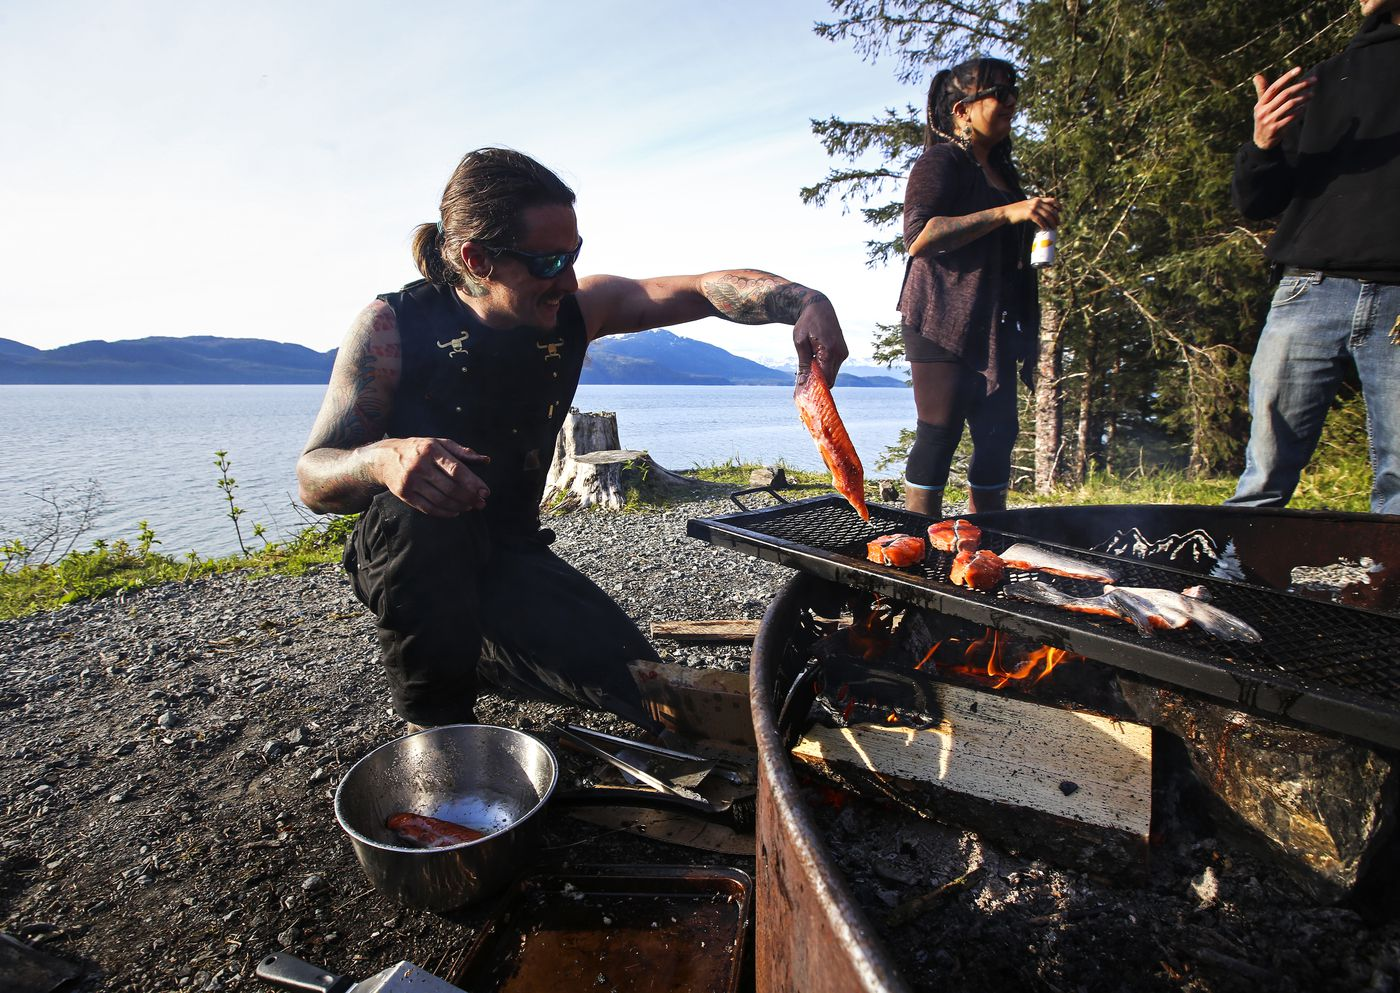 Matt Honkola places a piece of king salmon he harvested during the first Copper River opener on a grill while cooking for friends at Hartney Bay in Cordova on Tuesday, May 18, 2021. (Emily Mesner / ADN)